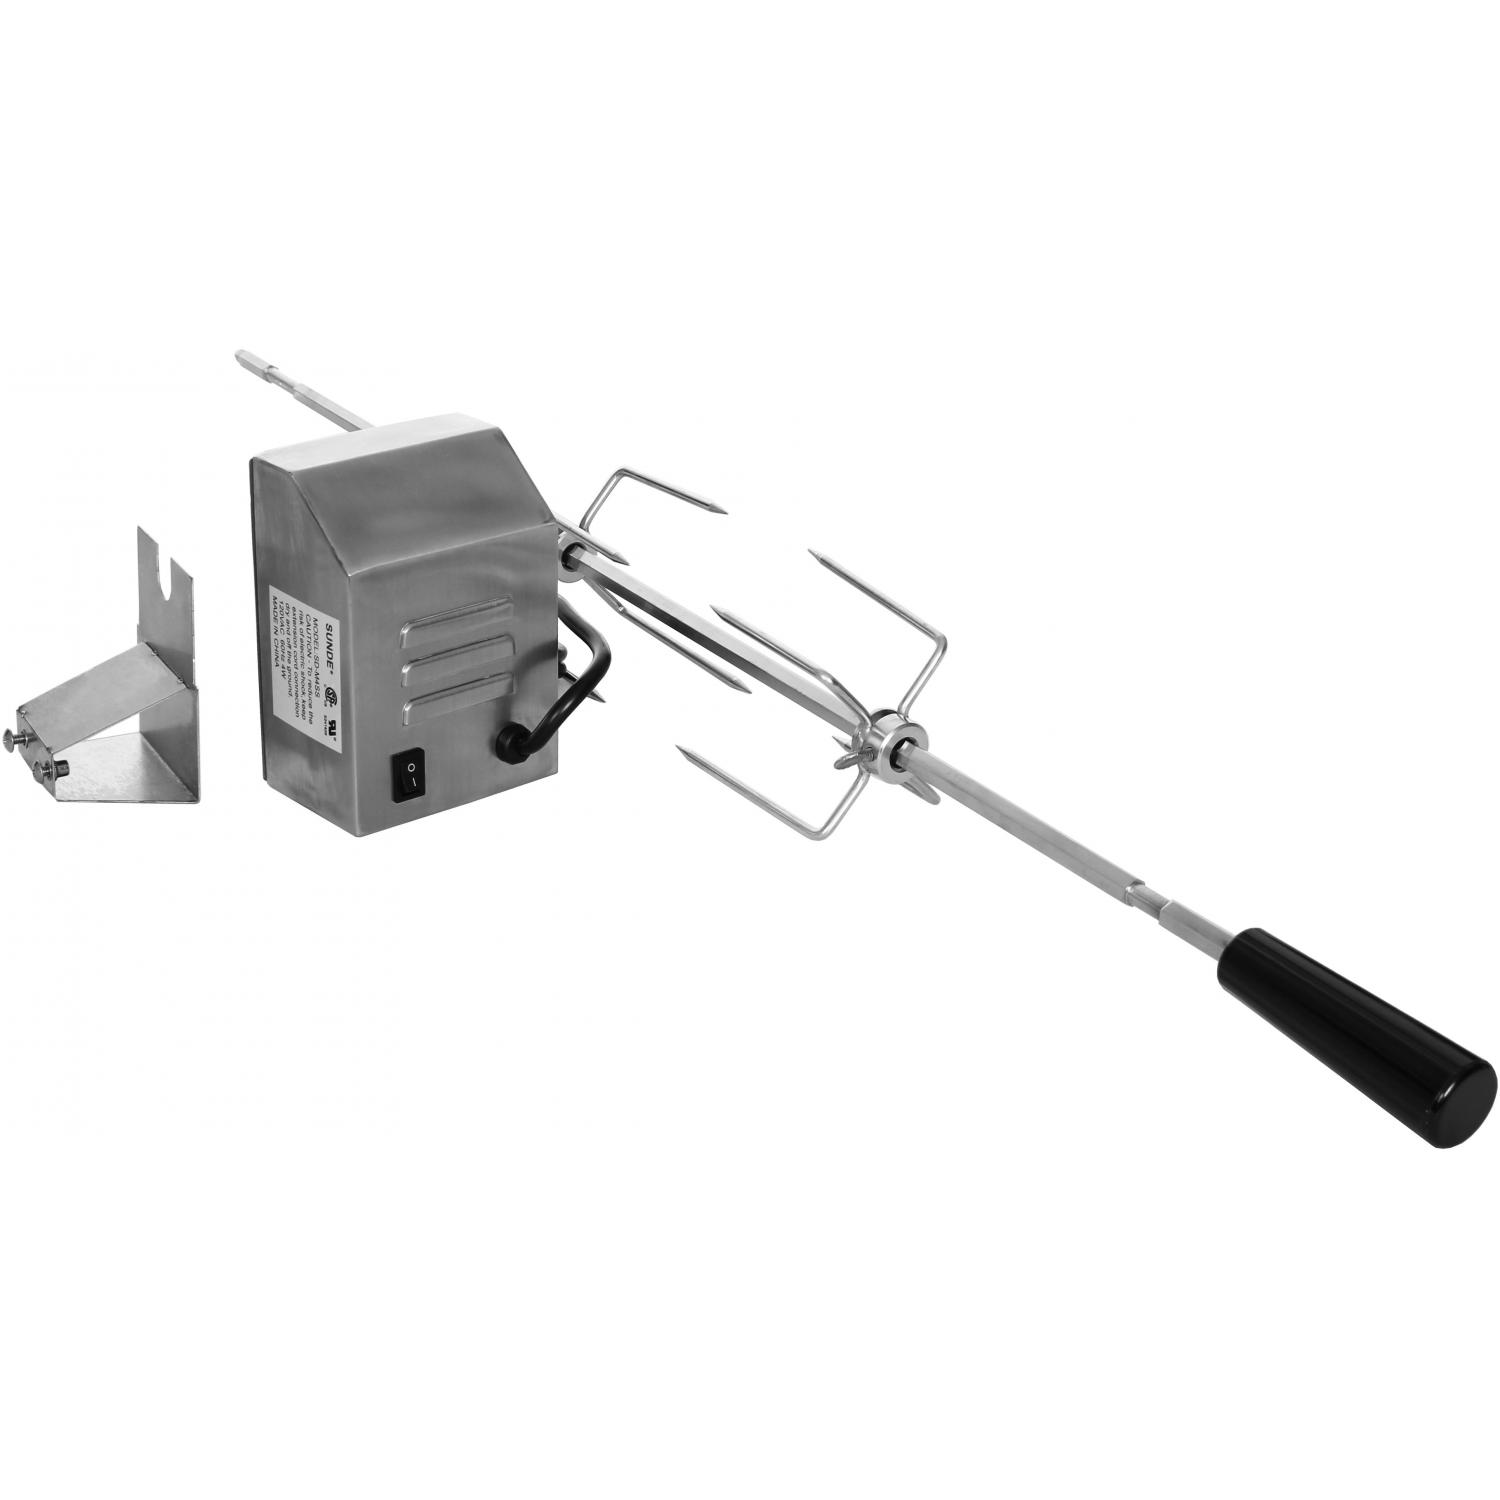 BBQGuys.com Rotisserie For 30 Inch Charcoal Grill 1759998